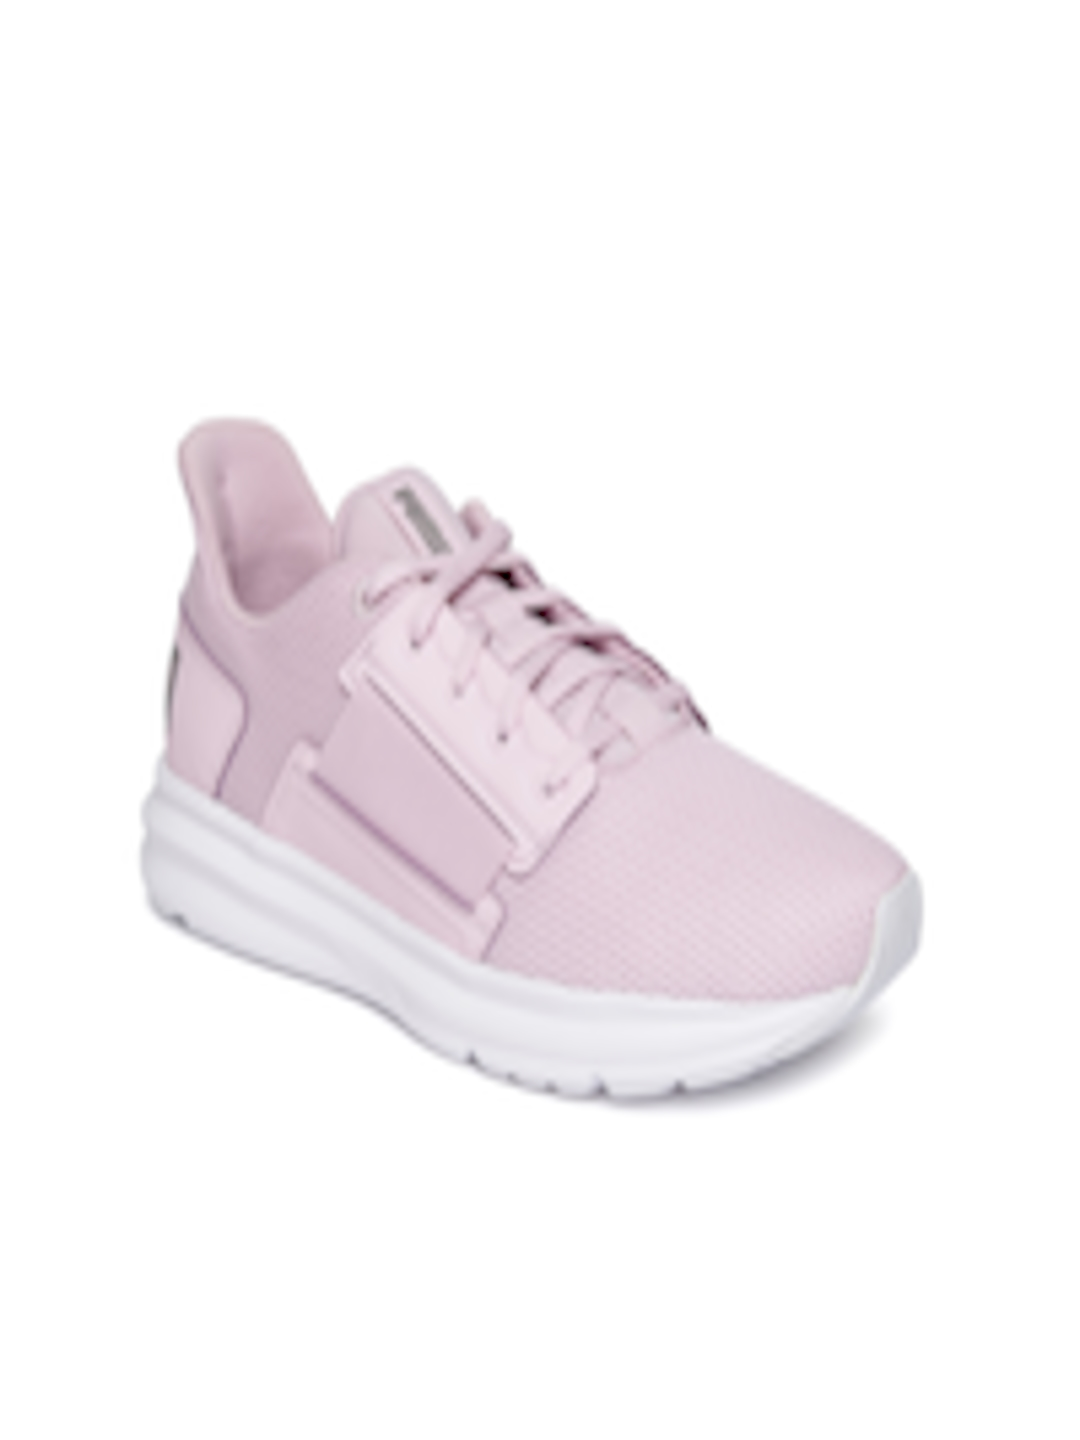 Buy Puma Women Pink Enzo Street Training Shoes Footwear for Women